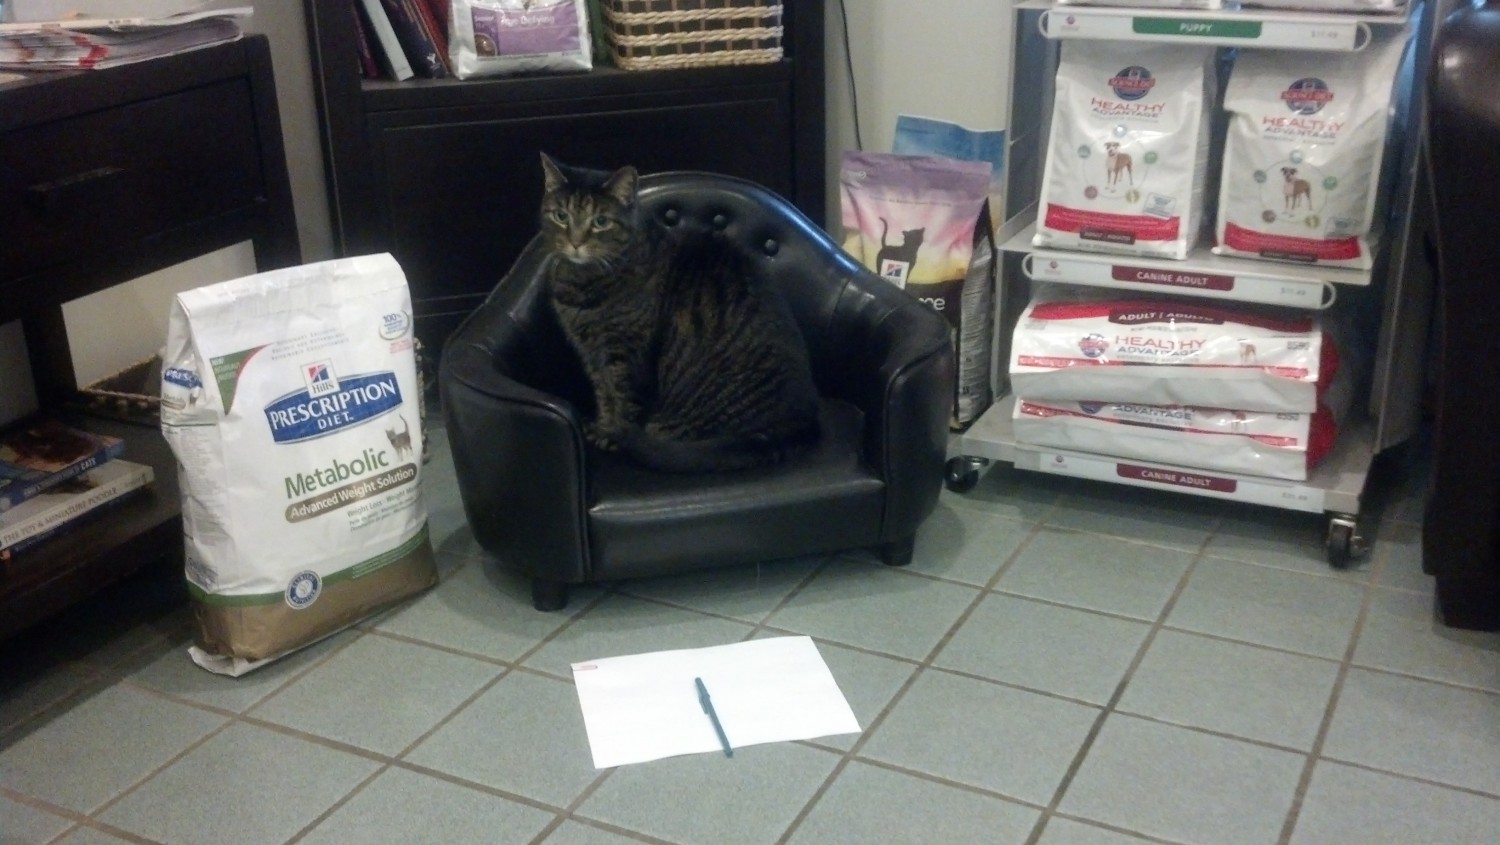 Broadlands / Ashburn, VA - Stream Valley Veterinary Hospital - Shadow is taking notes, and he's ready to answer your questions!